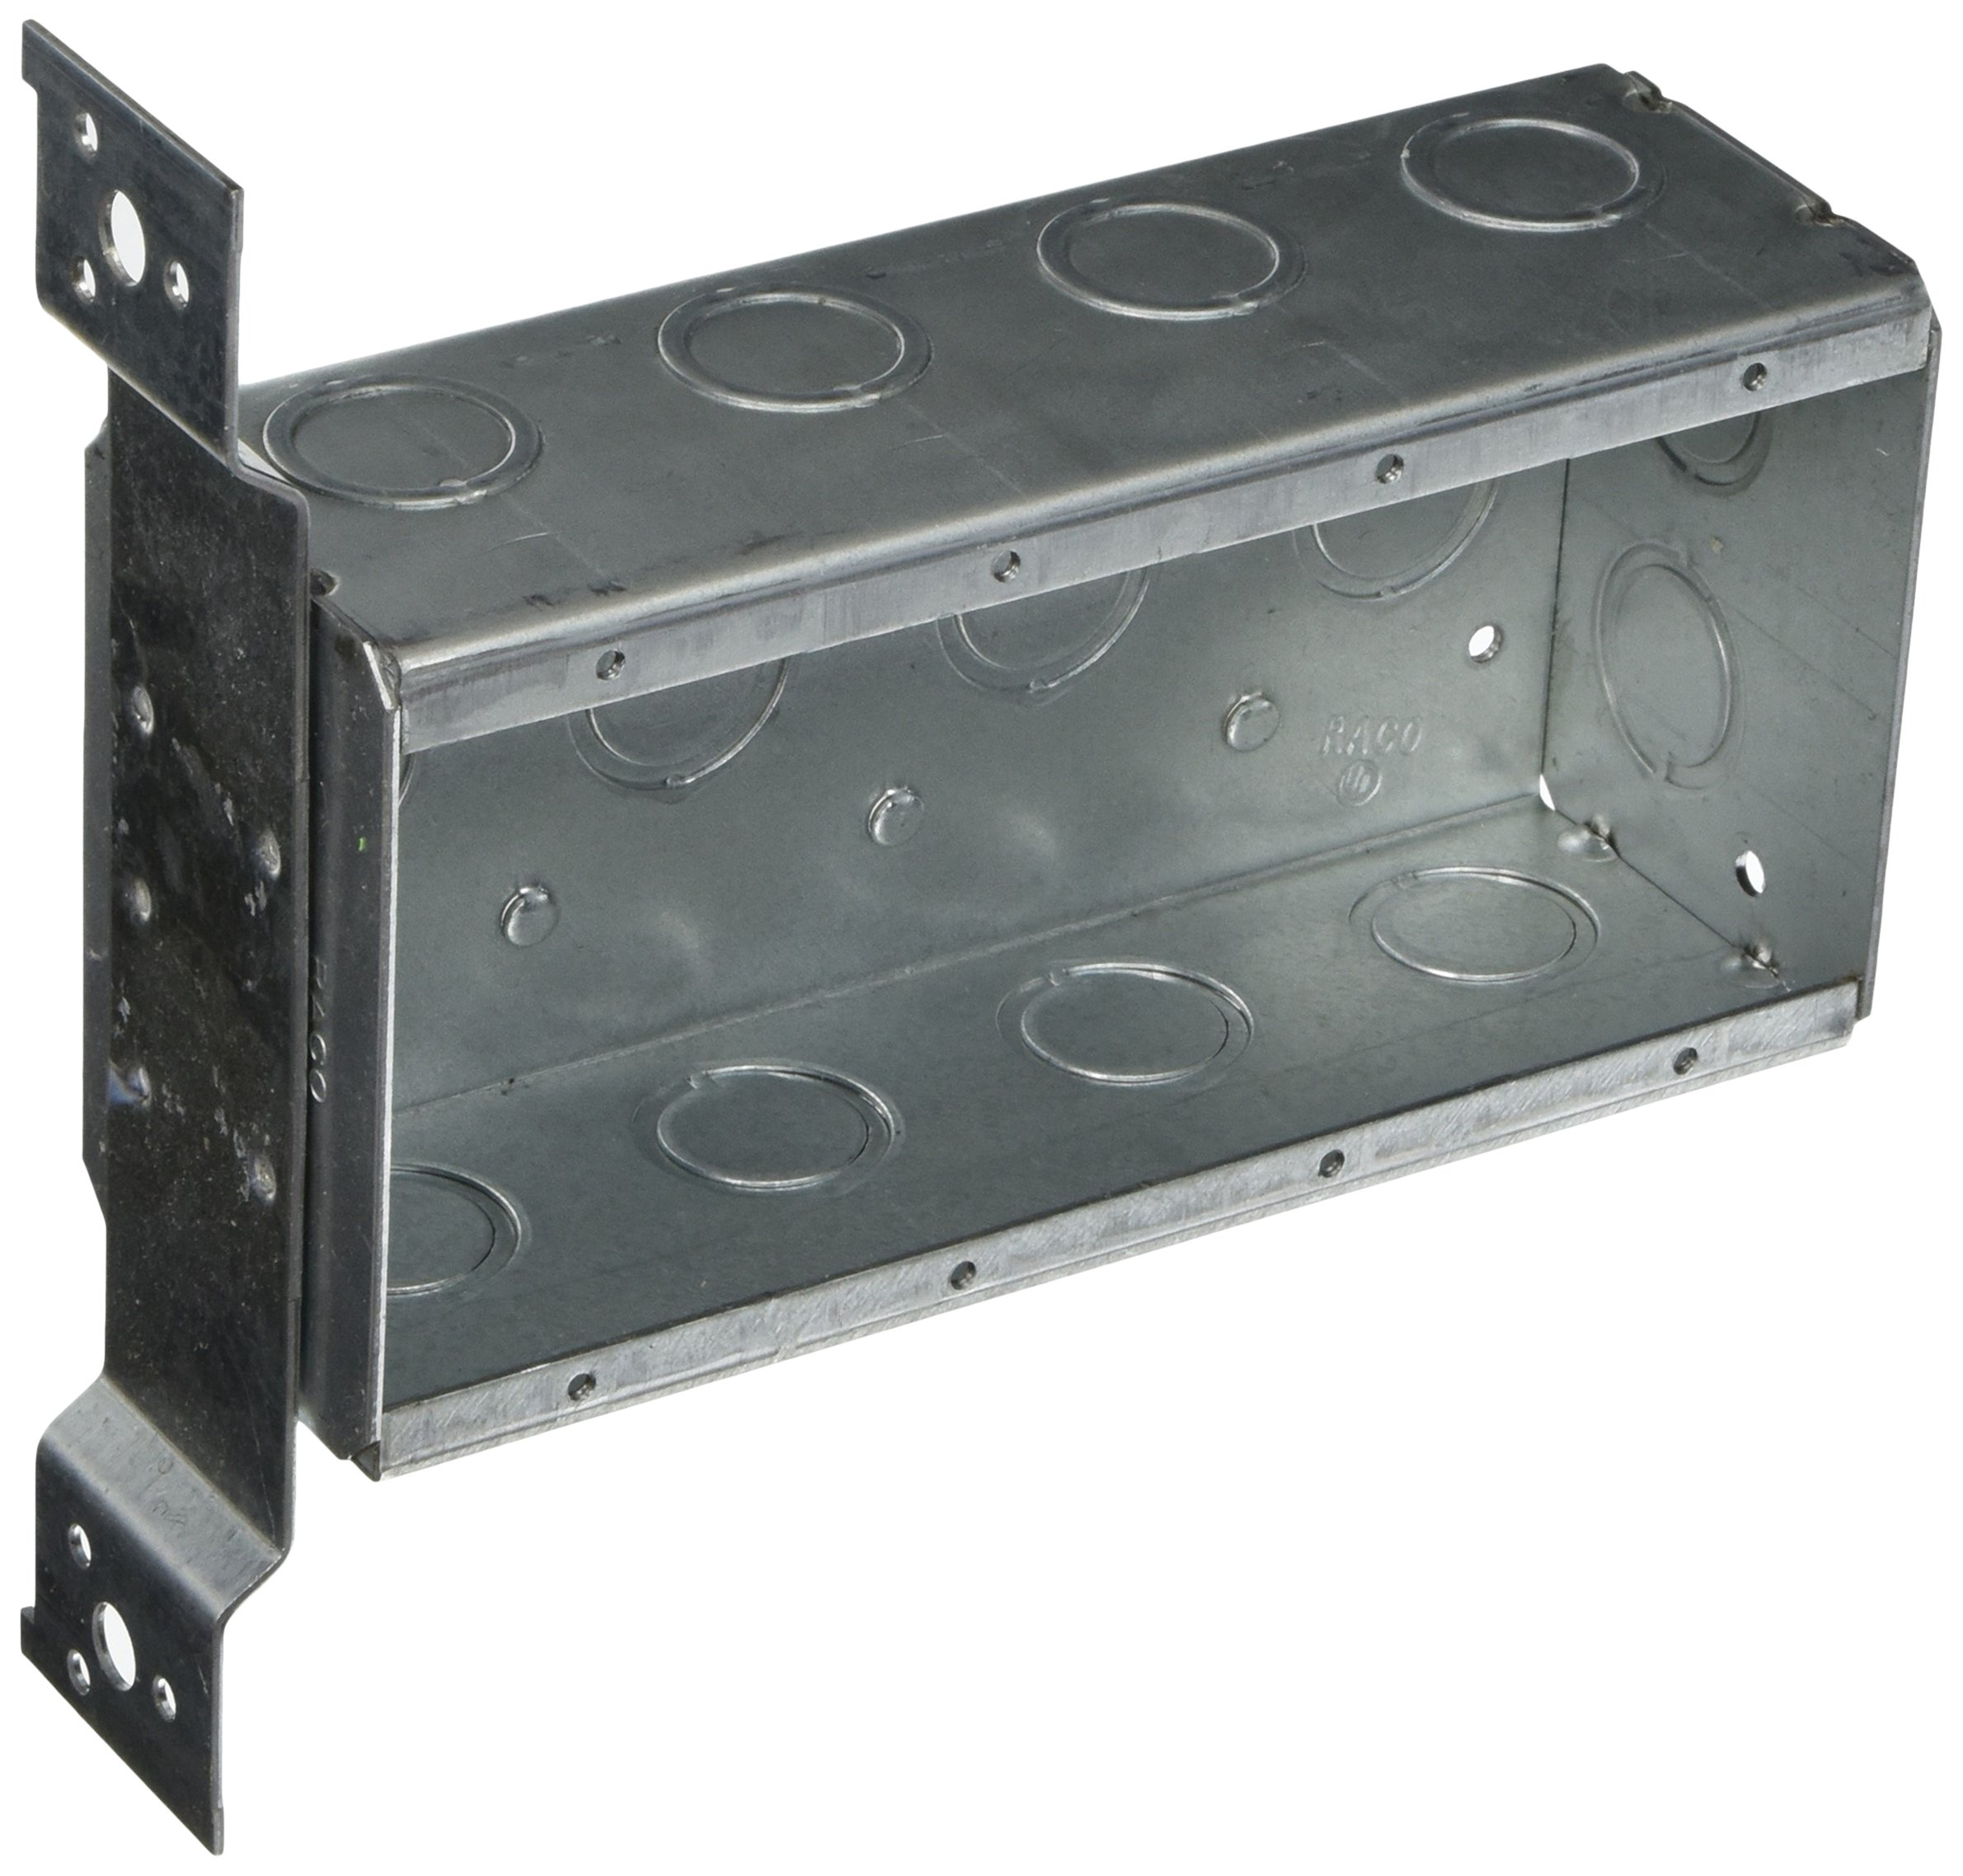 Hubbell-Raco 687 4 Gang 2-1/2-Inch Deep Switch Box, Welded with 1/2-Inch Setback Side Bracket, (12) Concentric 1/2-Inch & 3/4-Inch Knockouts